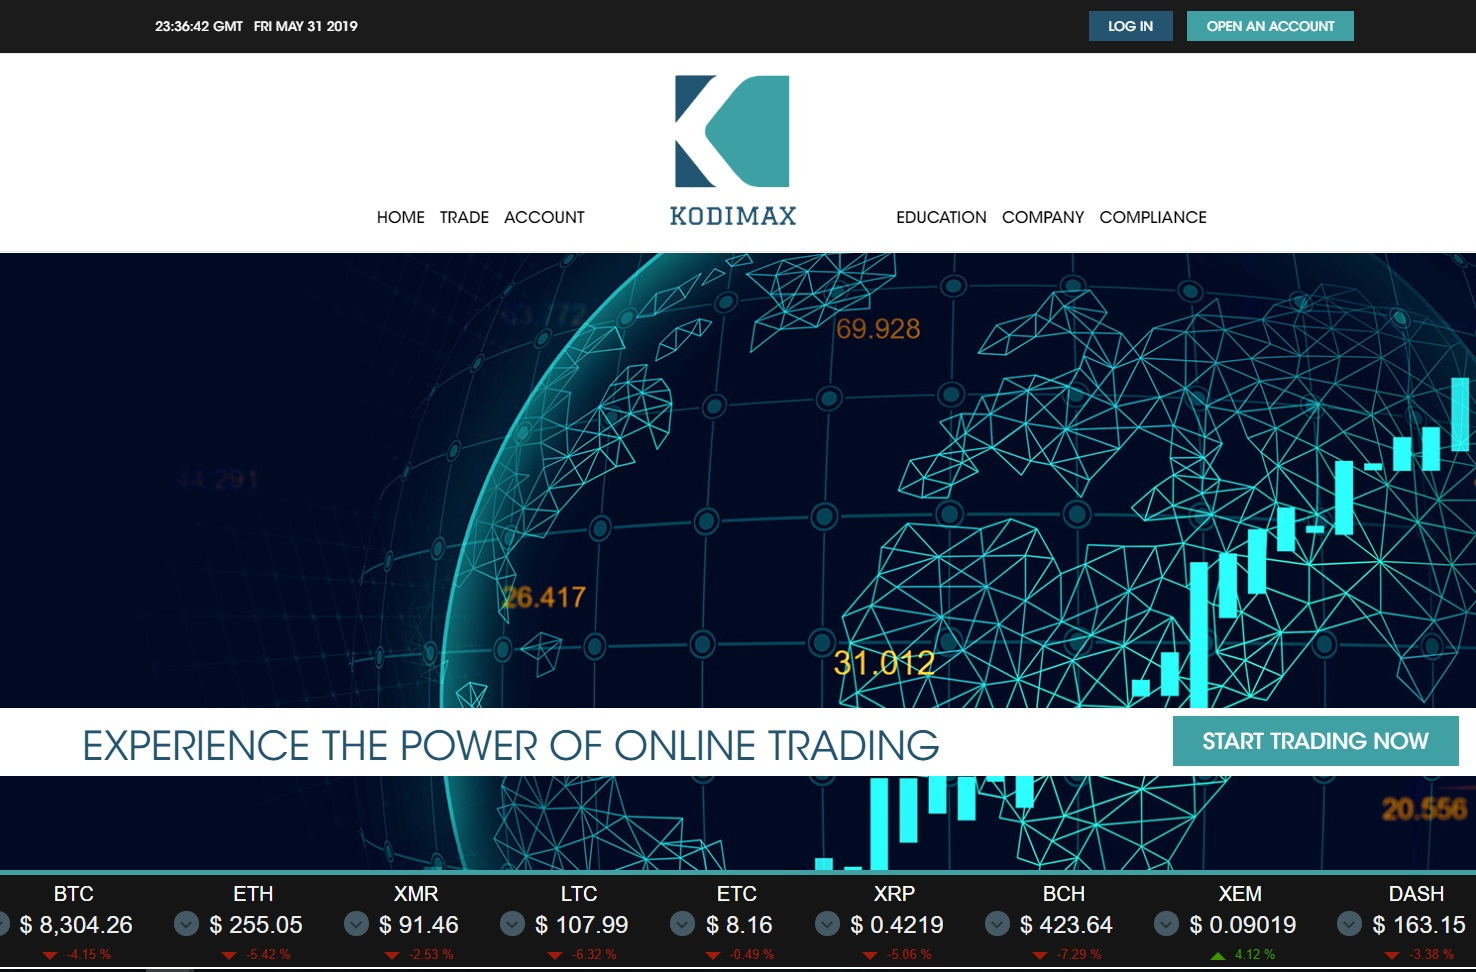 Kodimax Review: Does Trading With Kodimax Offer Freedom to the Traders?